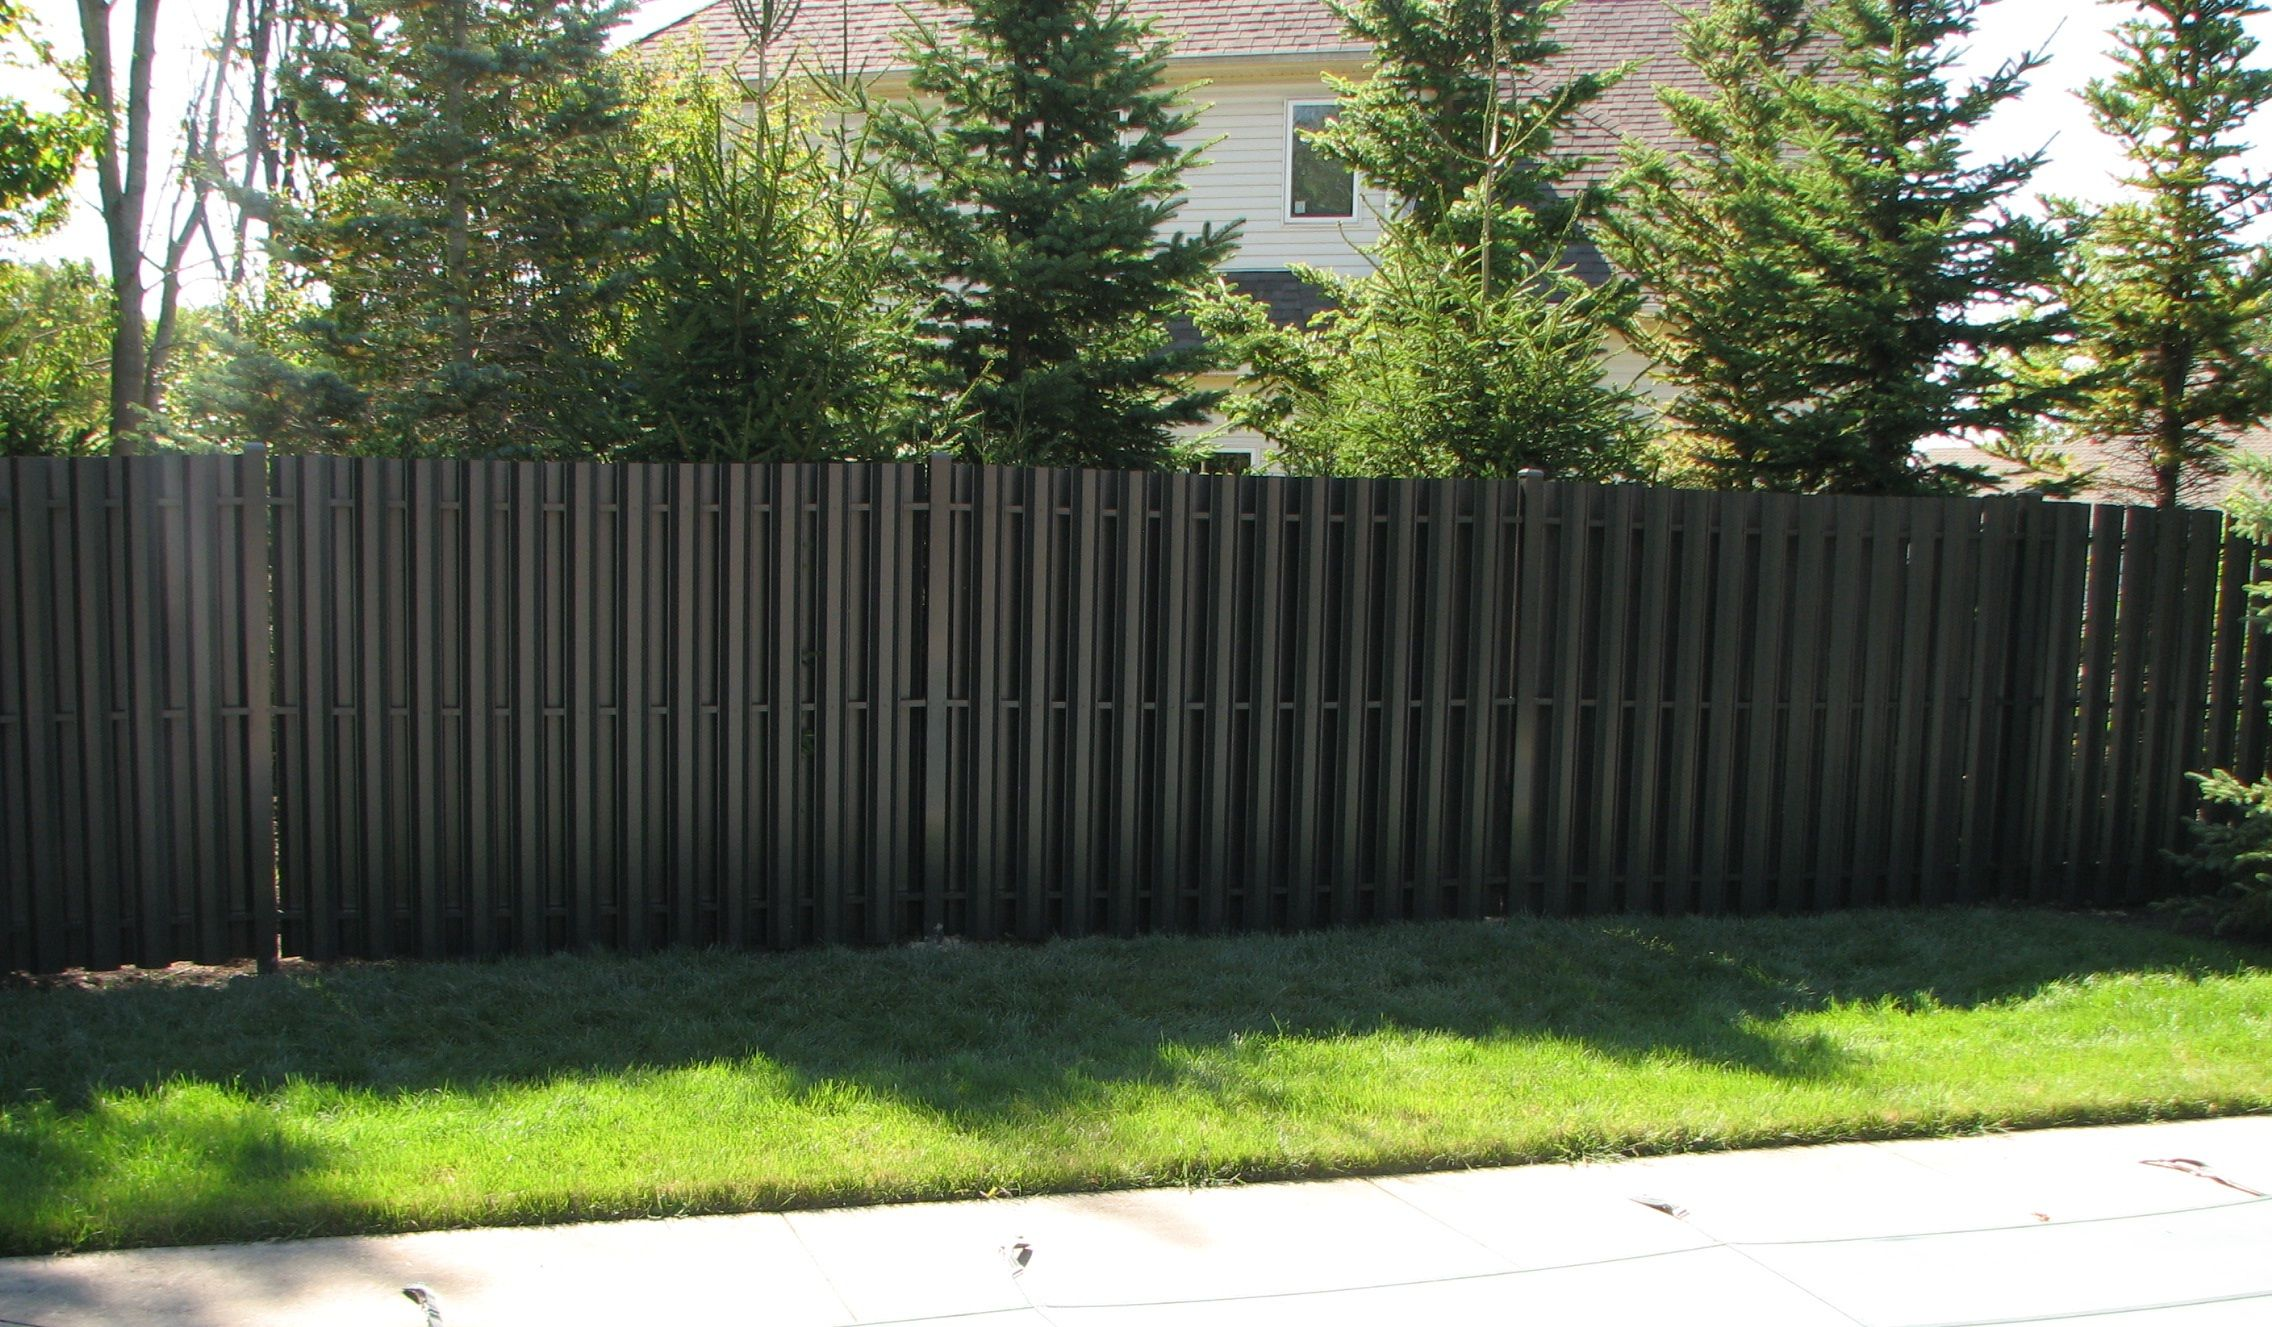 Fence Panels Residential Solid Panel Aluminum Privacy Fence Fence Design Privacy Fence Panels Fence Panels